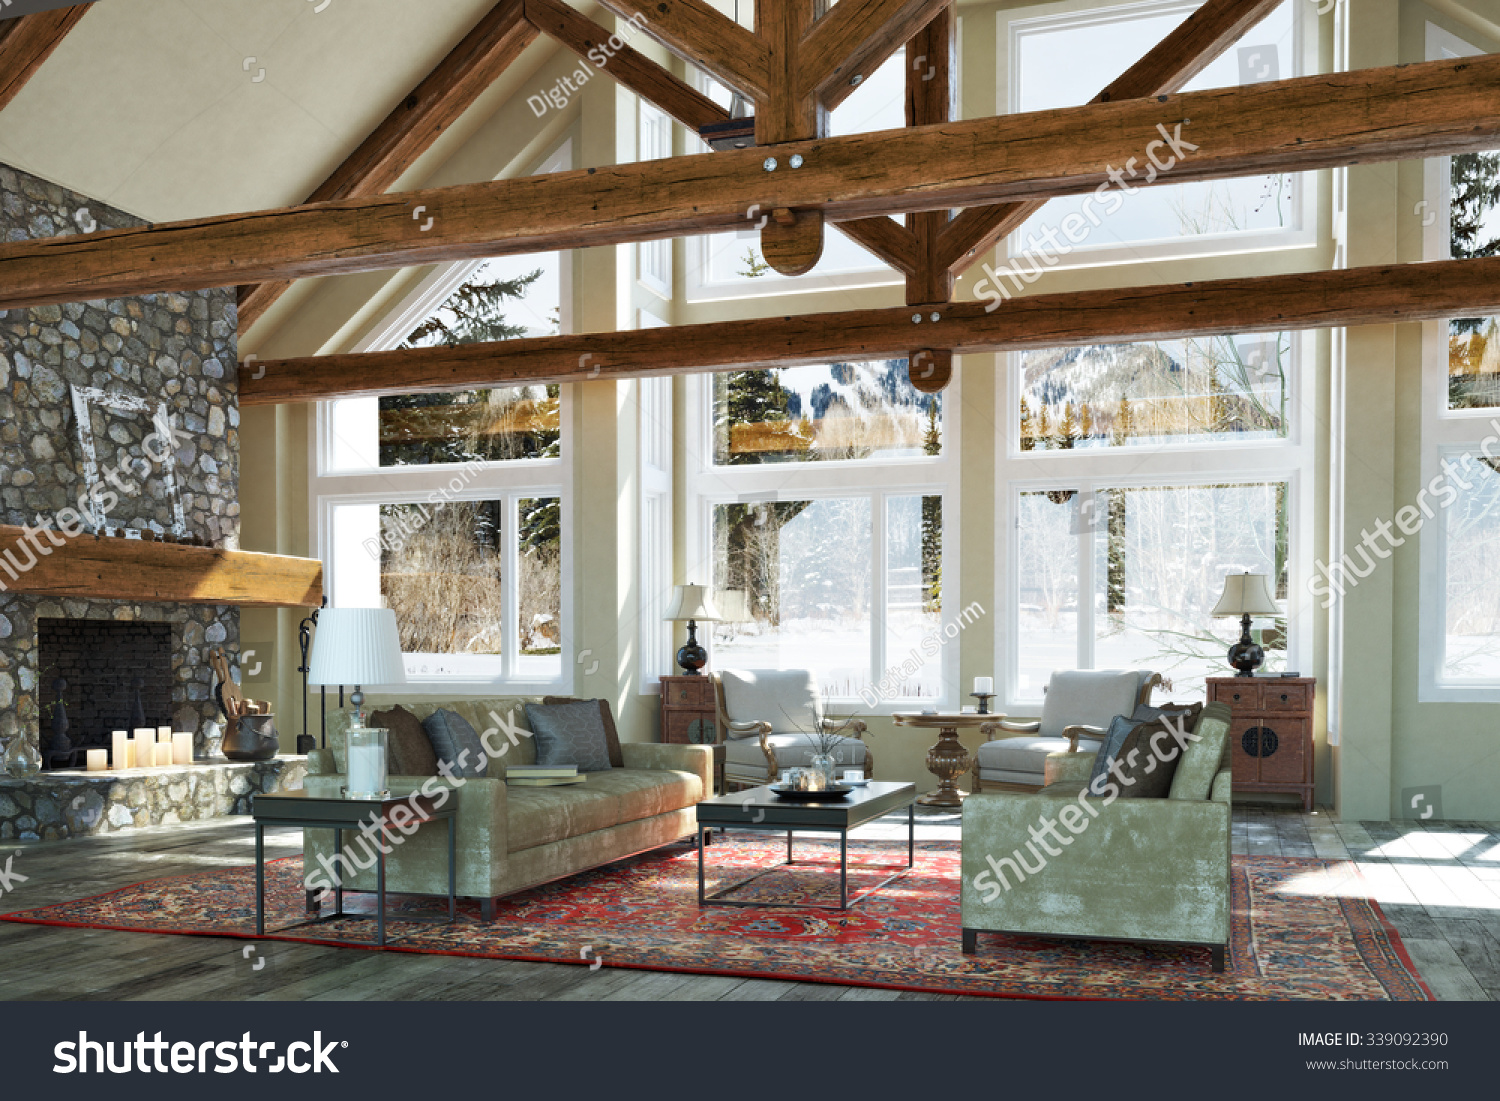 Open Floor Cabin Interior Family Room Design With Candle Lit Stone